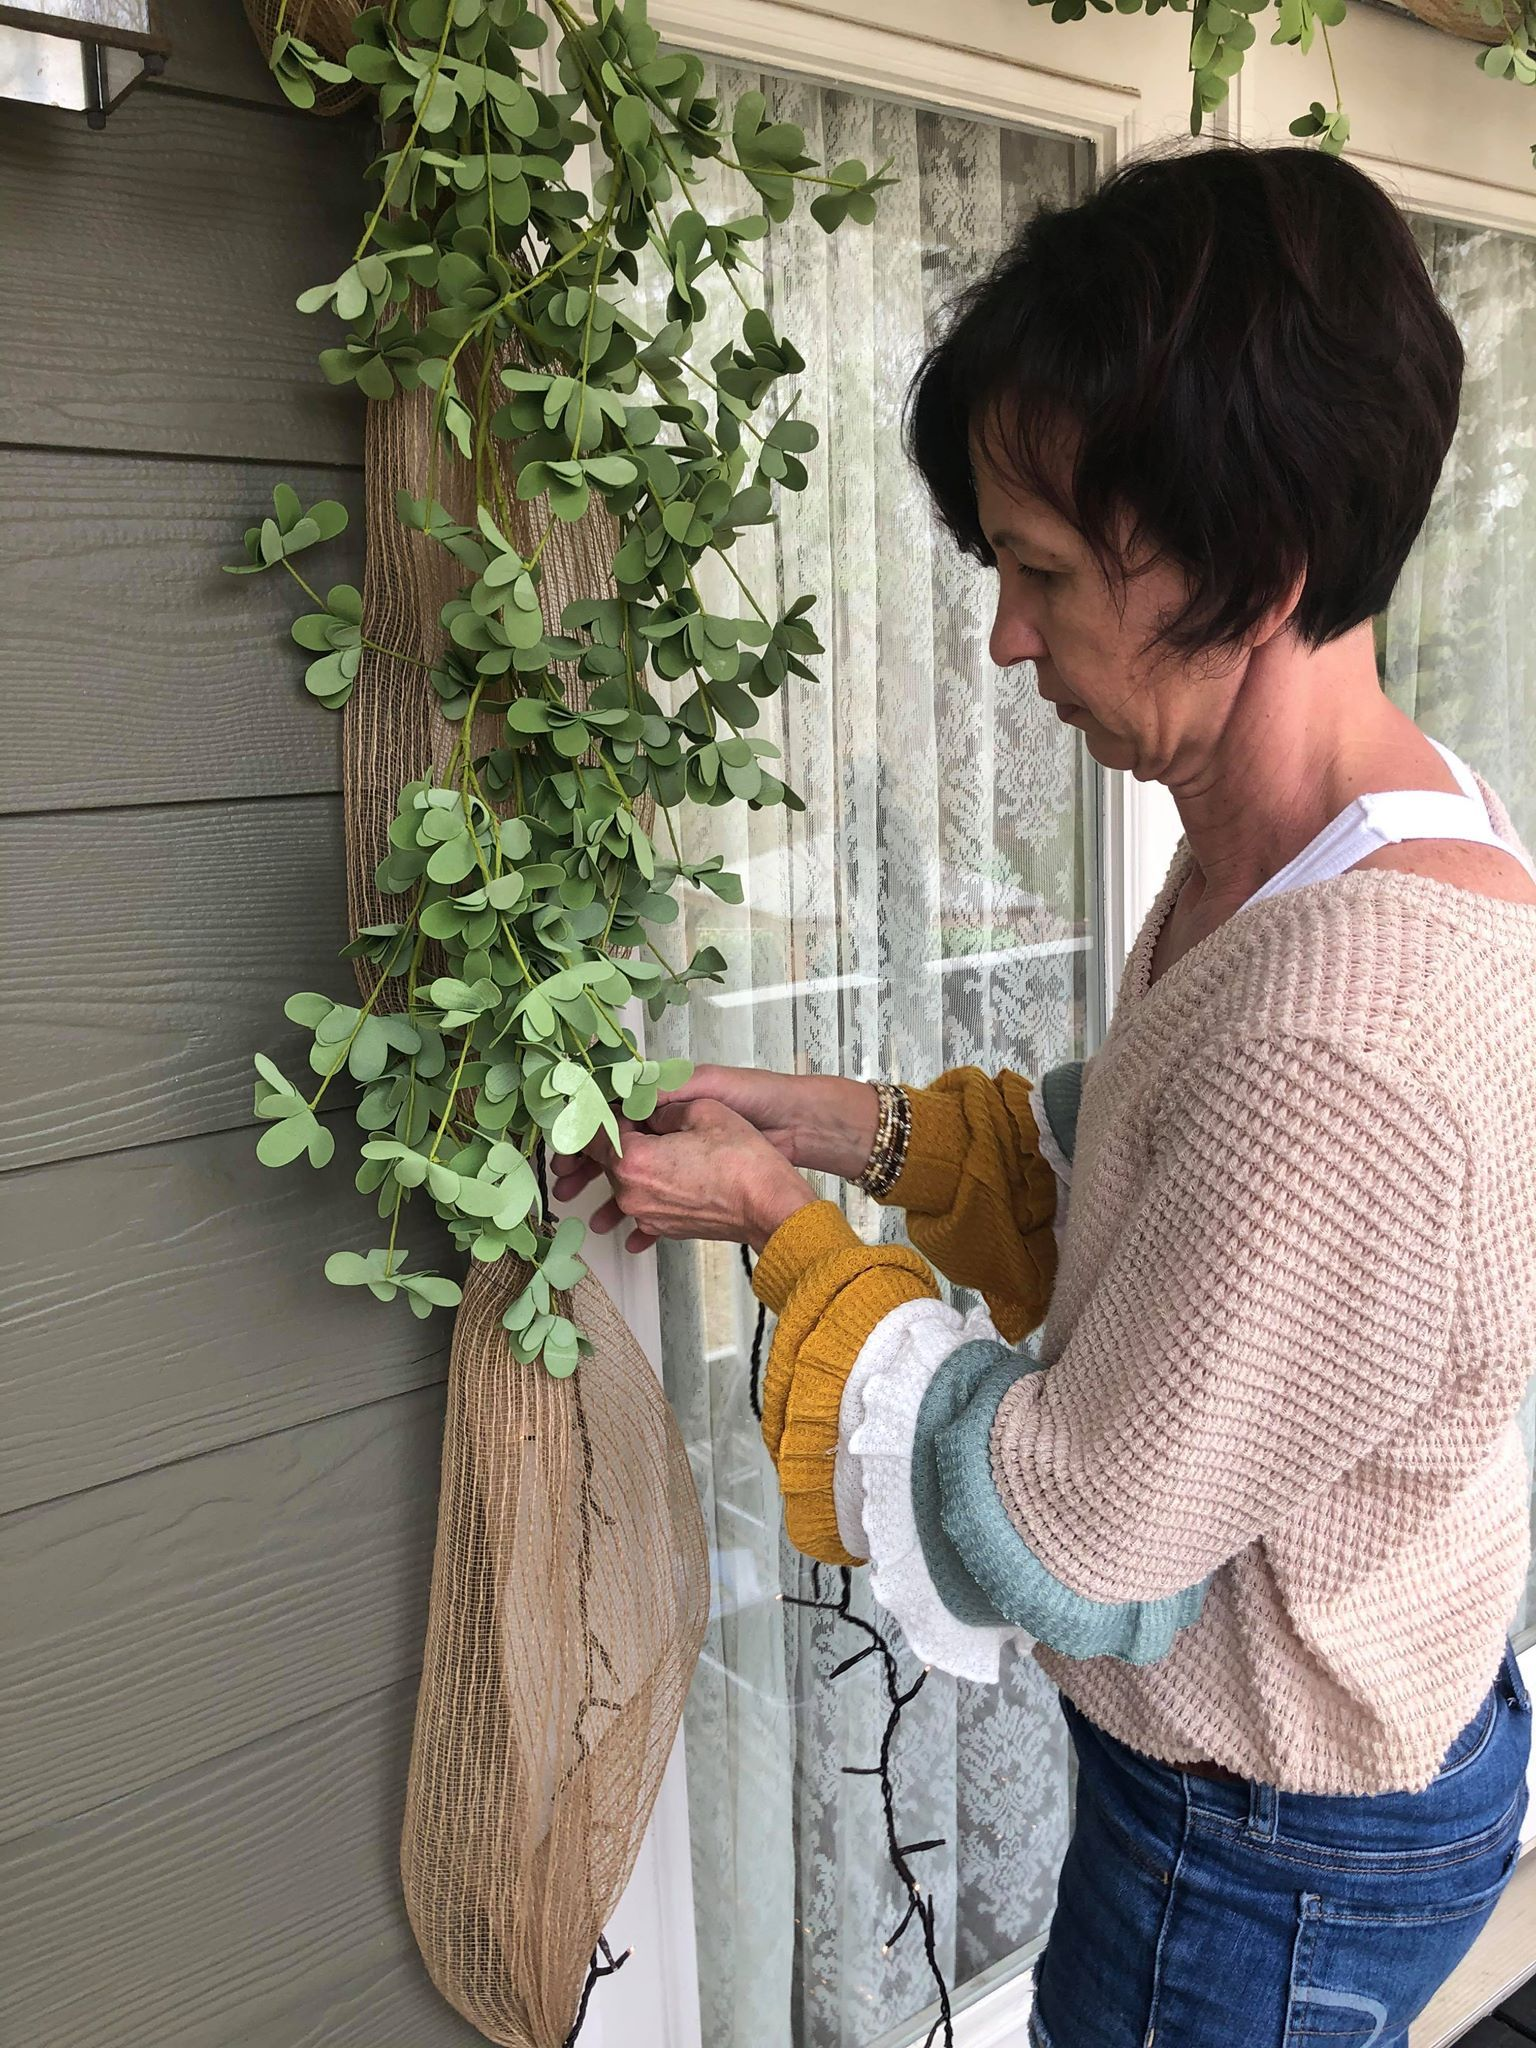 Ways To Decorate Your Front Door - The Shabby Tree